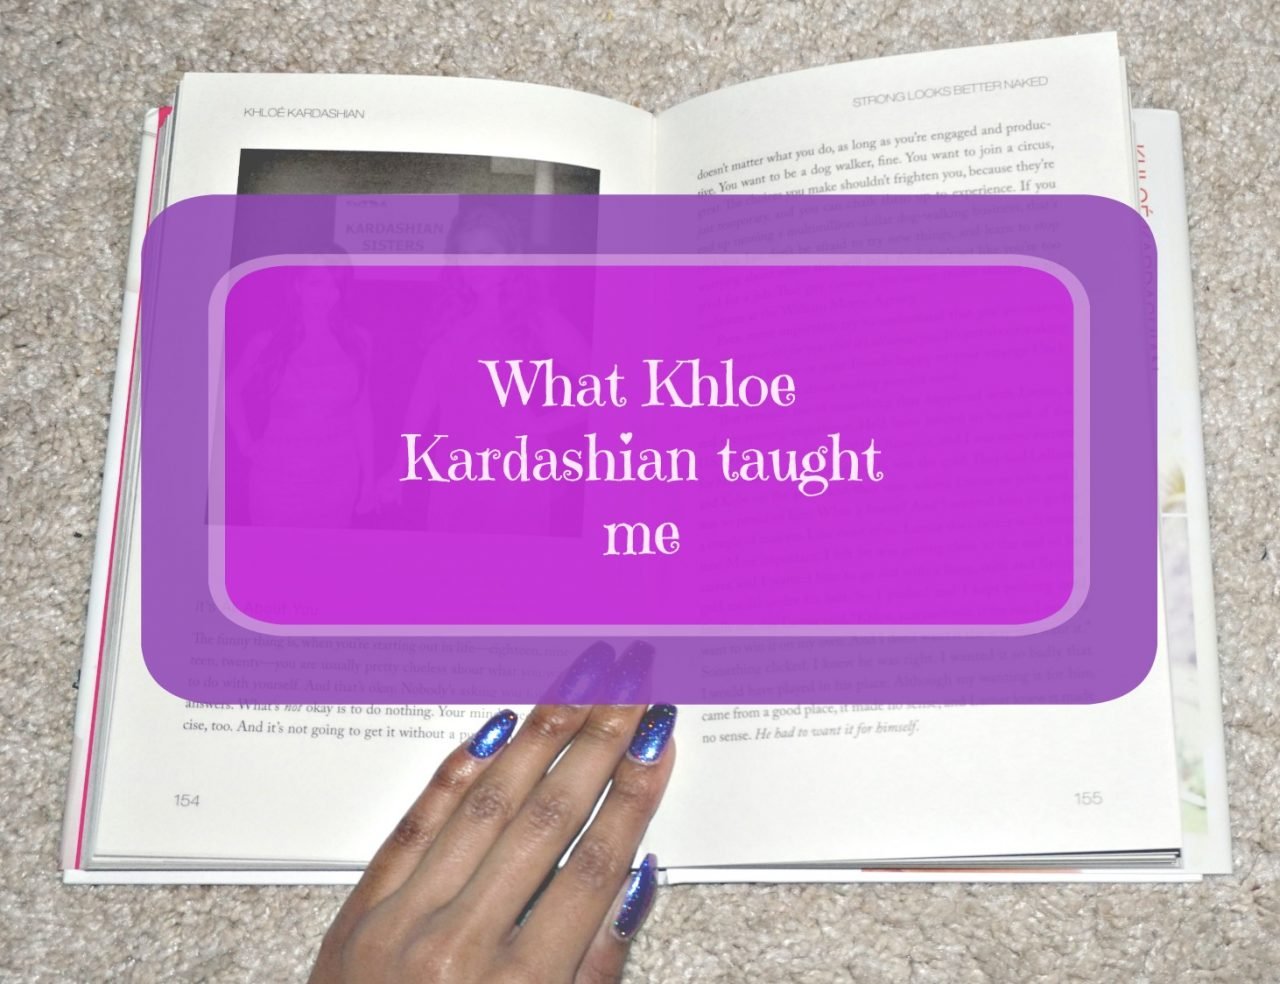 7 things Khloe Kardashian taught me